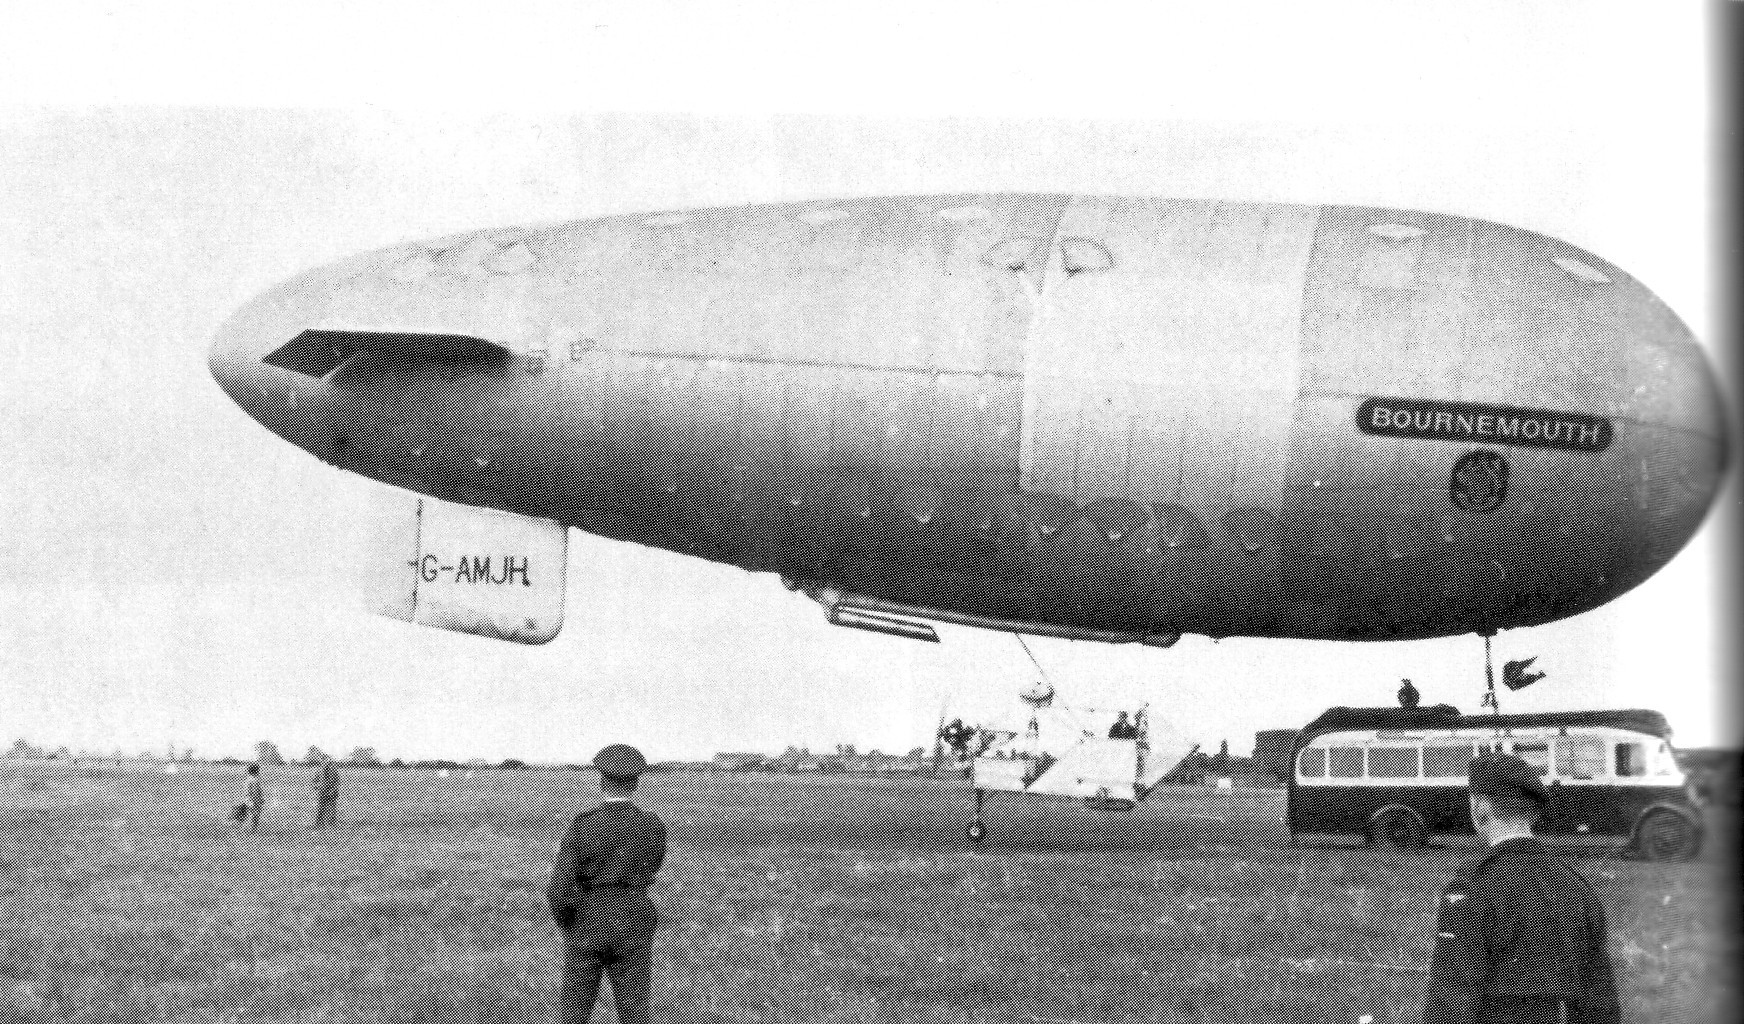 The bournemouth 1951 saw the airship revival by the airship